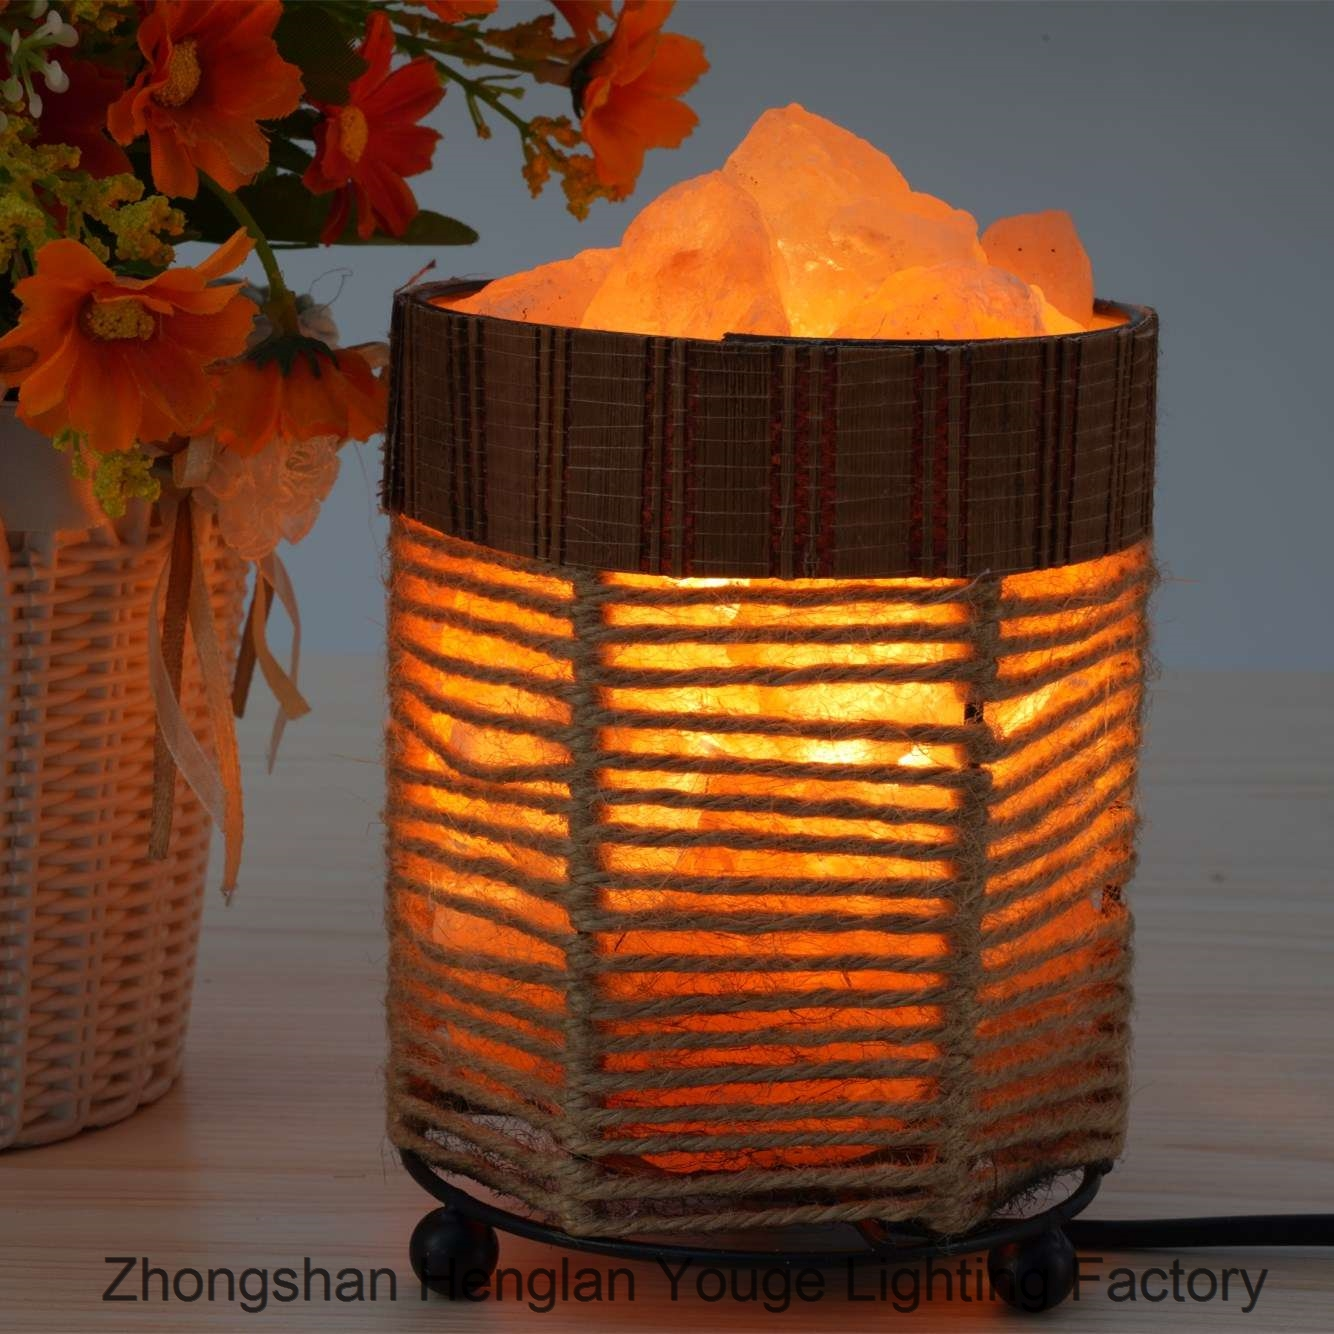 Iron Salt Lamps Household Nightlight-JH0004